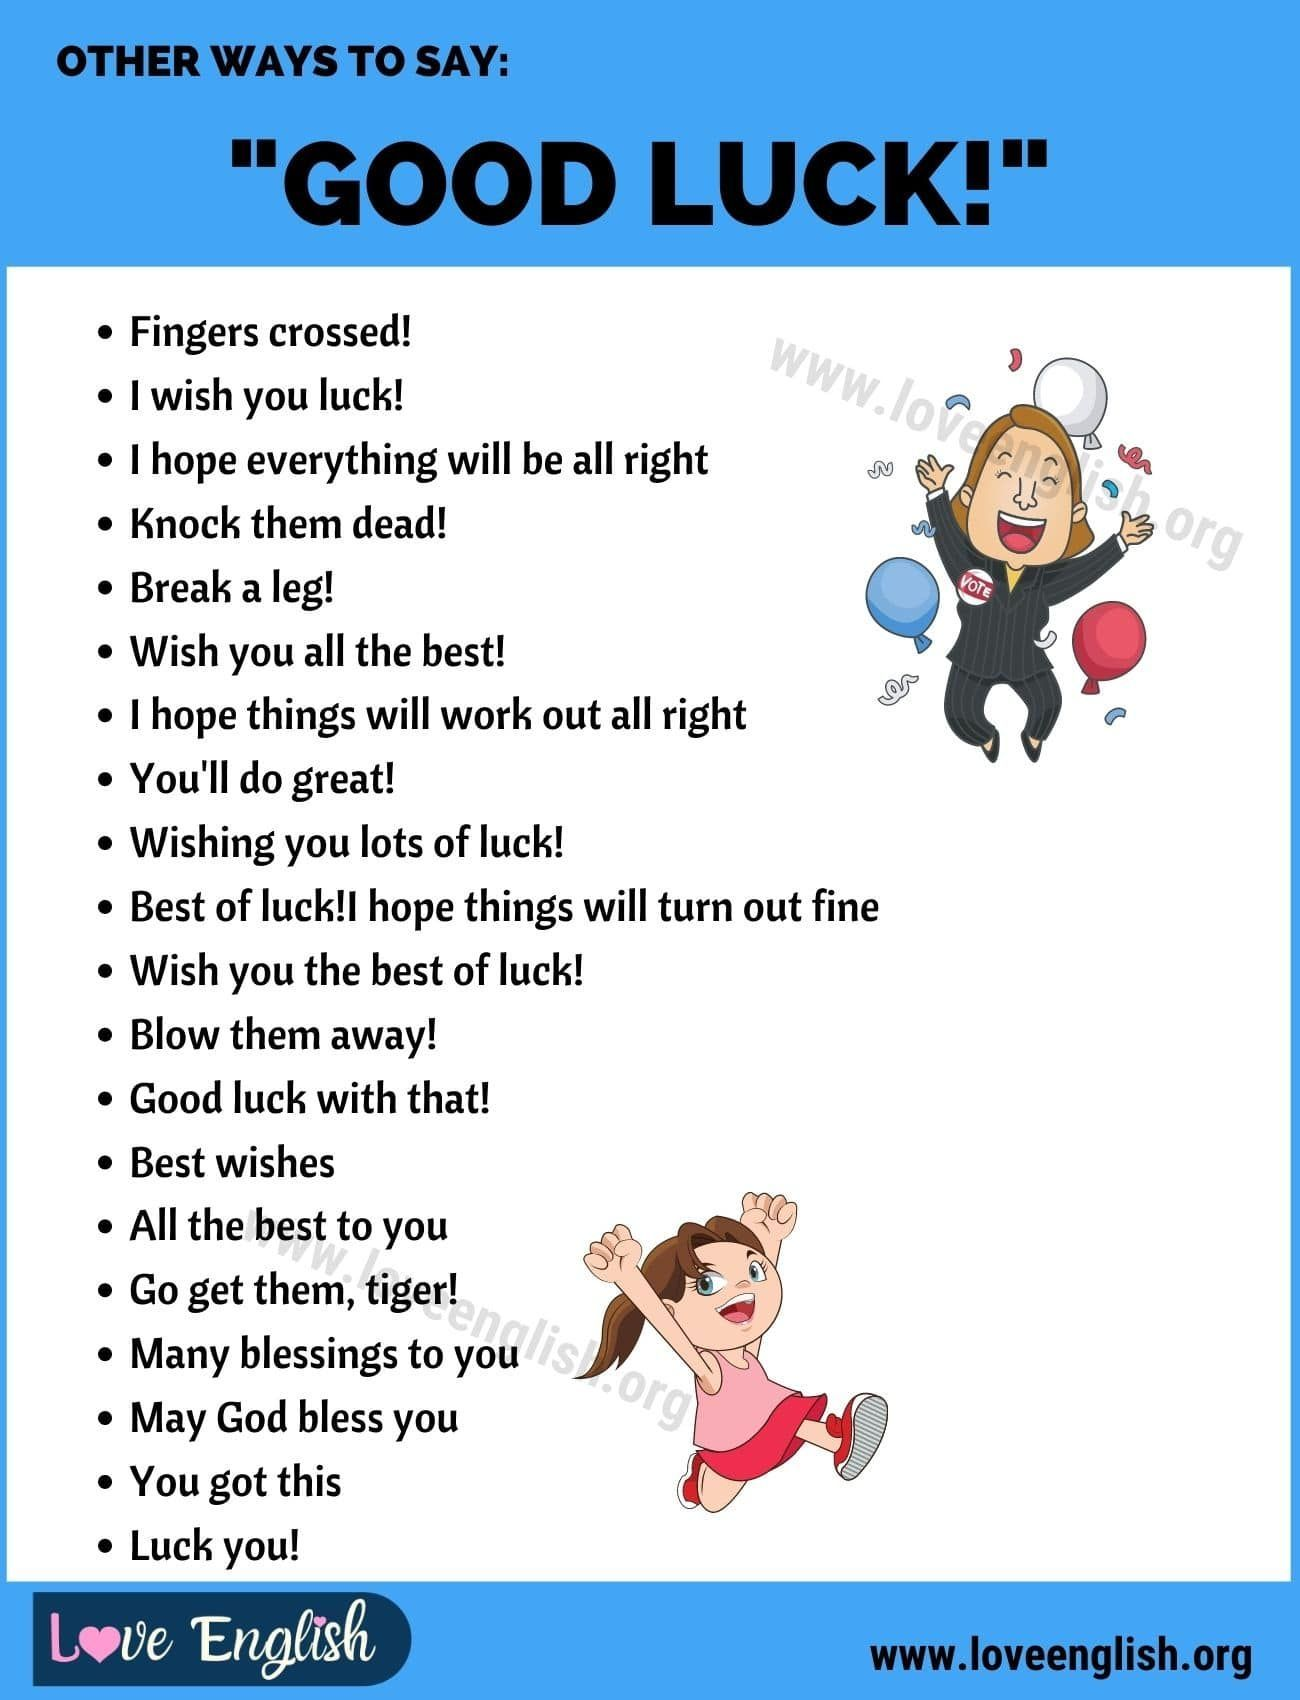 Good Luck 30 Clever Ways To Say Good Luck In English Love English Essay Writing Skills Learn English Words Other Ways To Say